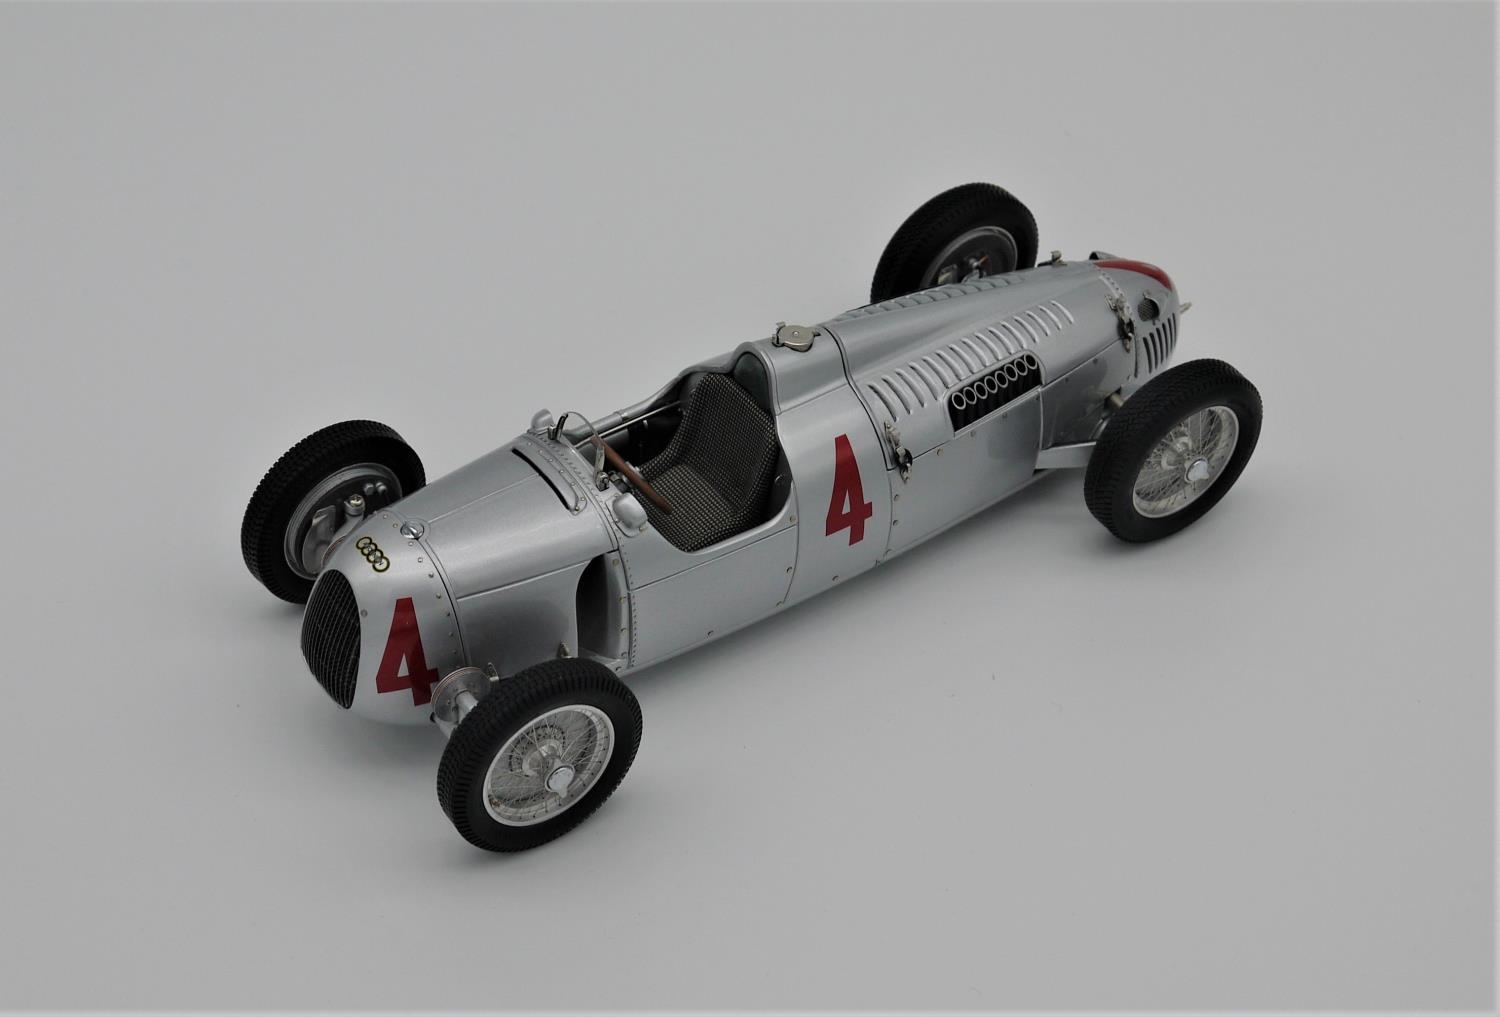 CMC MODELS 1:18 SCALE MODEL OF THE 1936 AUTO UNION TYP C NUMBER 4 (reference M073) as driven to